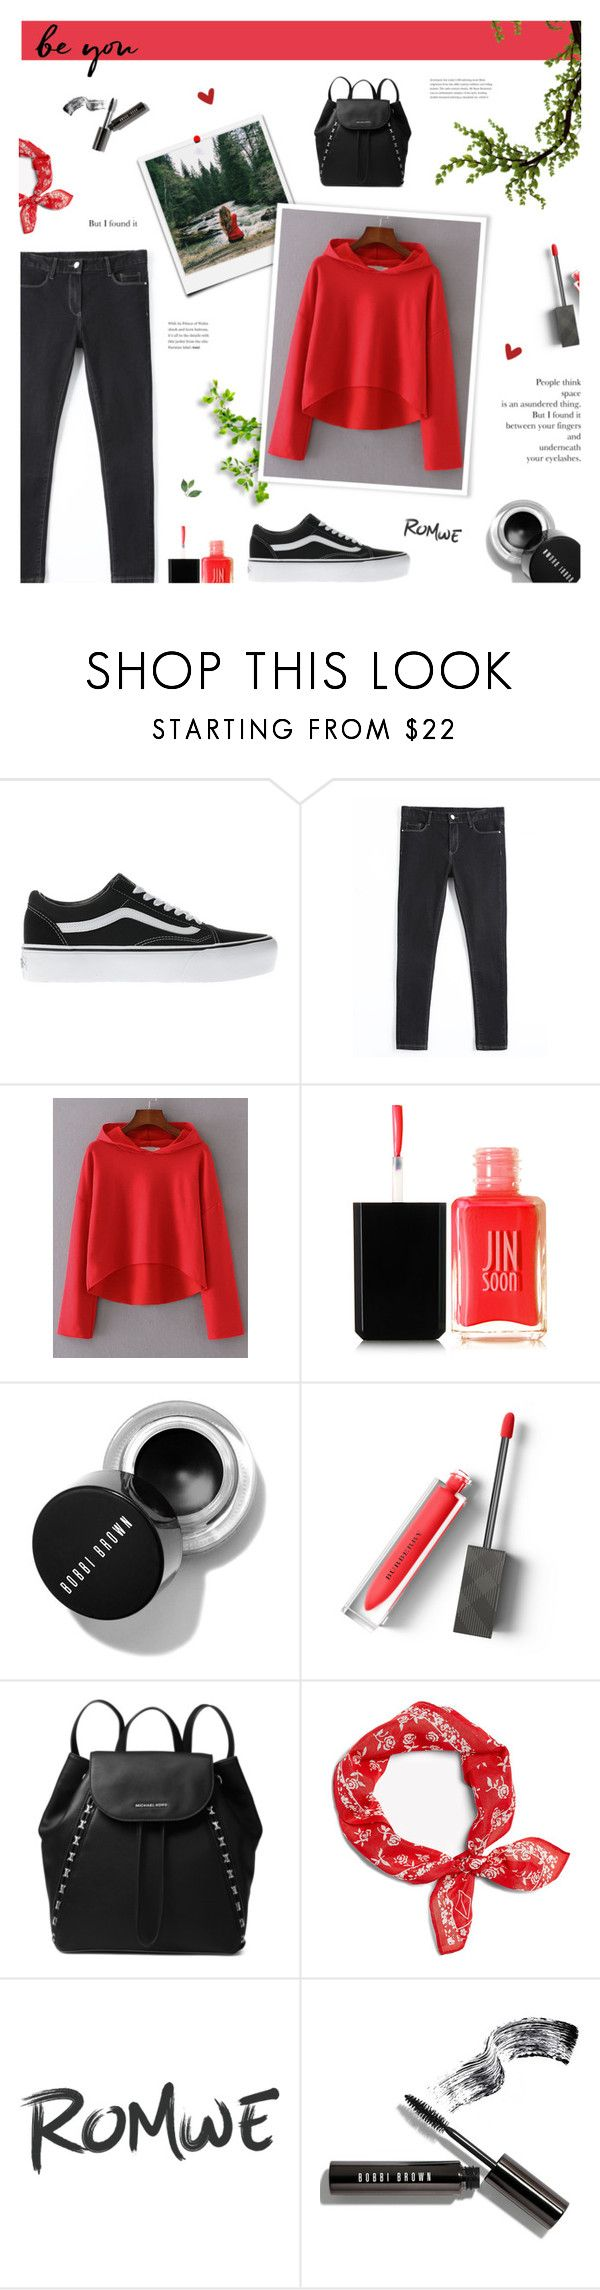 """WIN ROMWE COUPON! Read D"" by paradiselemonade ❤ liked on Polyvore featuring Vans, JINsoon, Burberry, MICHAEL Michael Kors and Bobbi Brown Cosmetics"